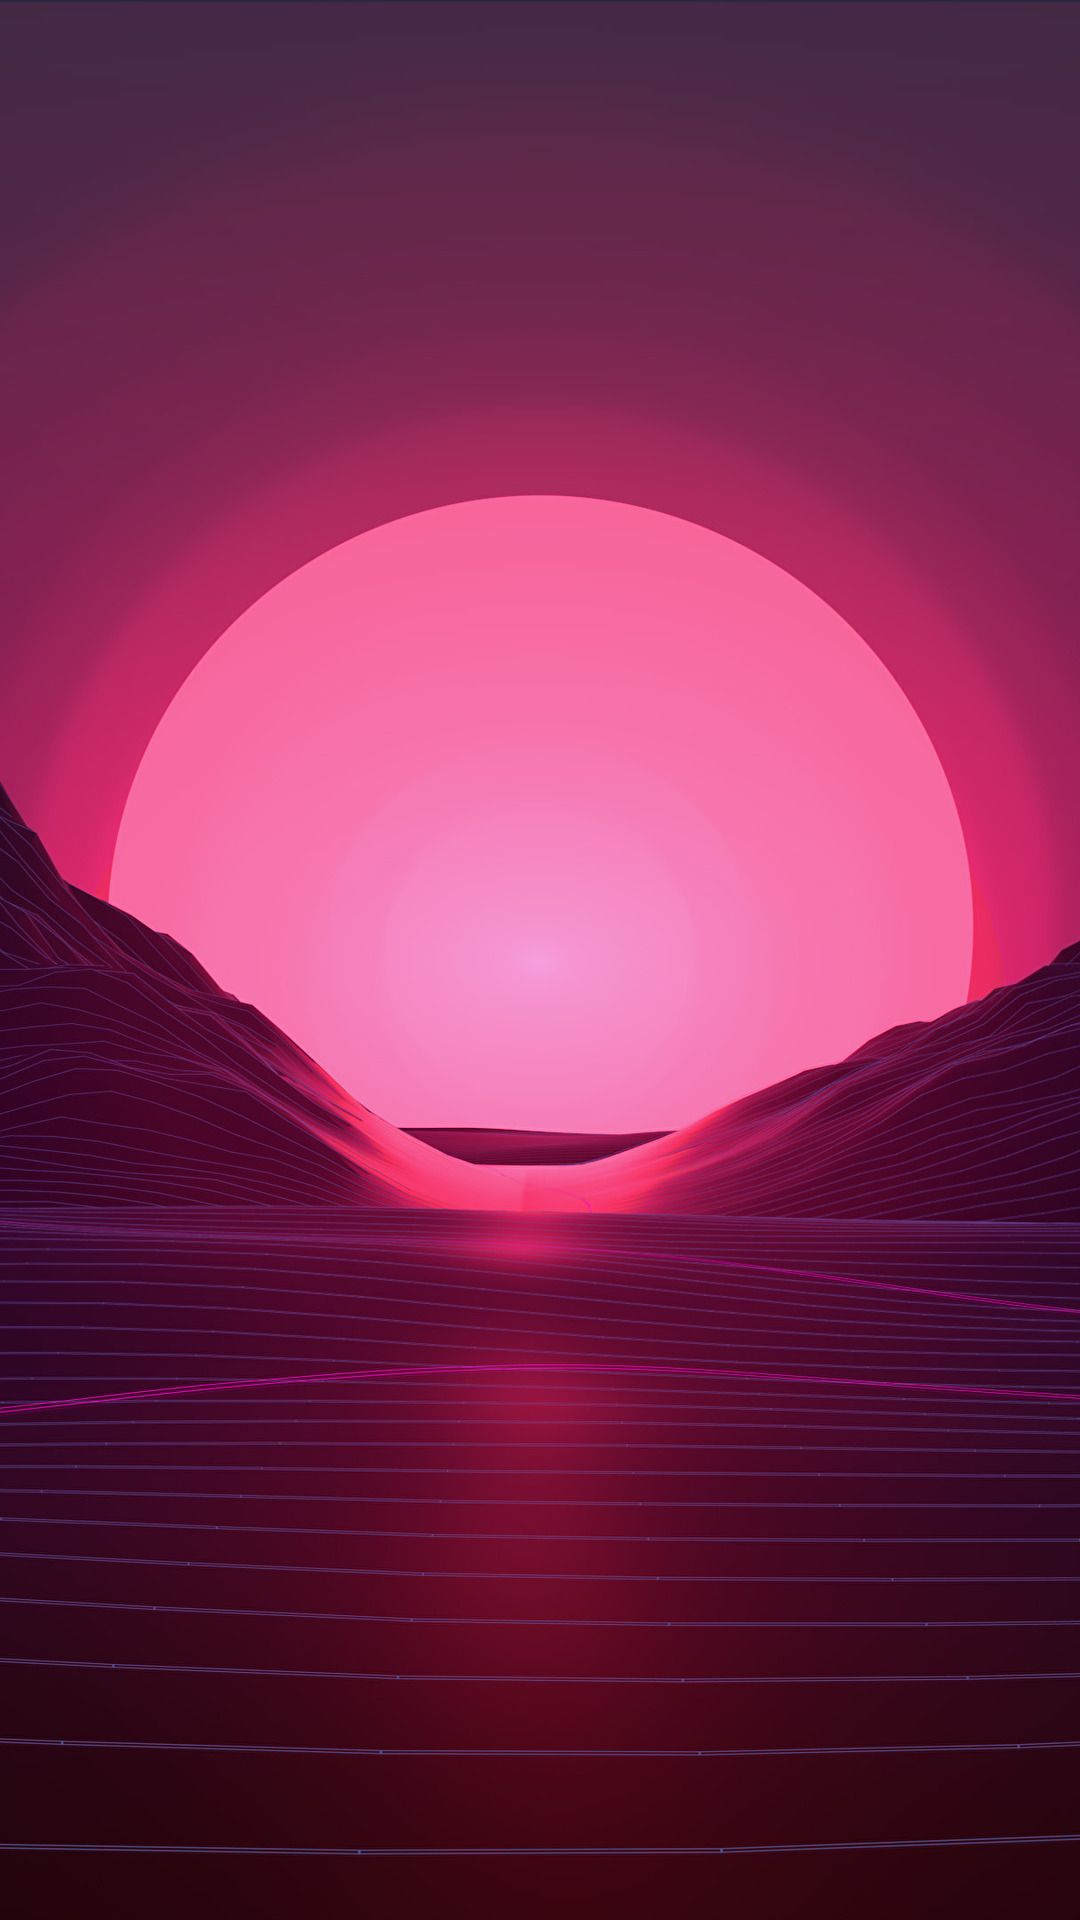 Vaporwave Sunset 1080x1920 Aesthetic Wallpapers Neon Wallpaper Vaporwave Wallpaper